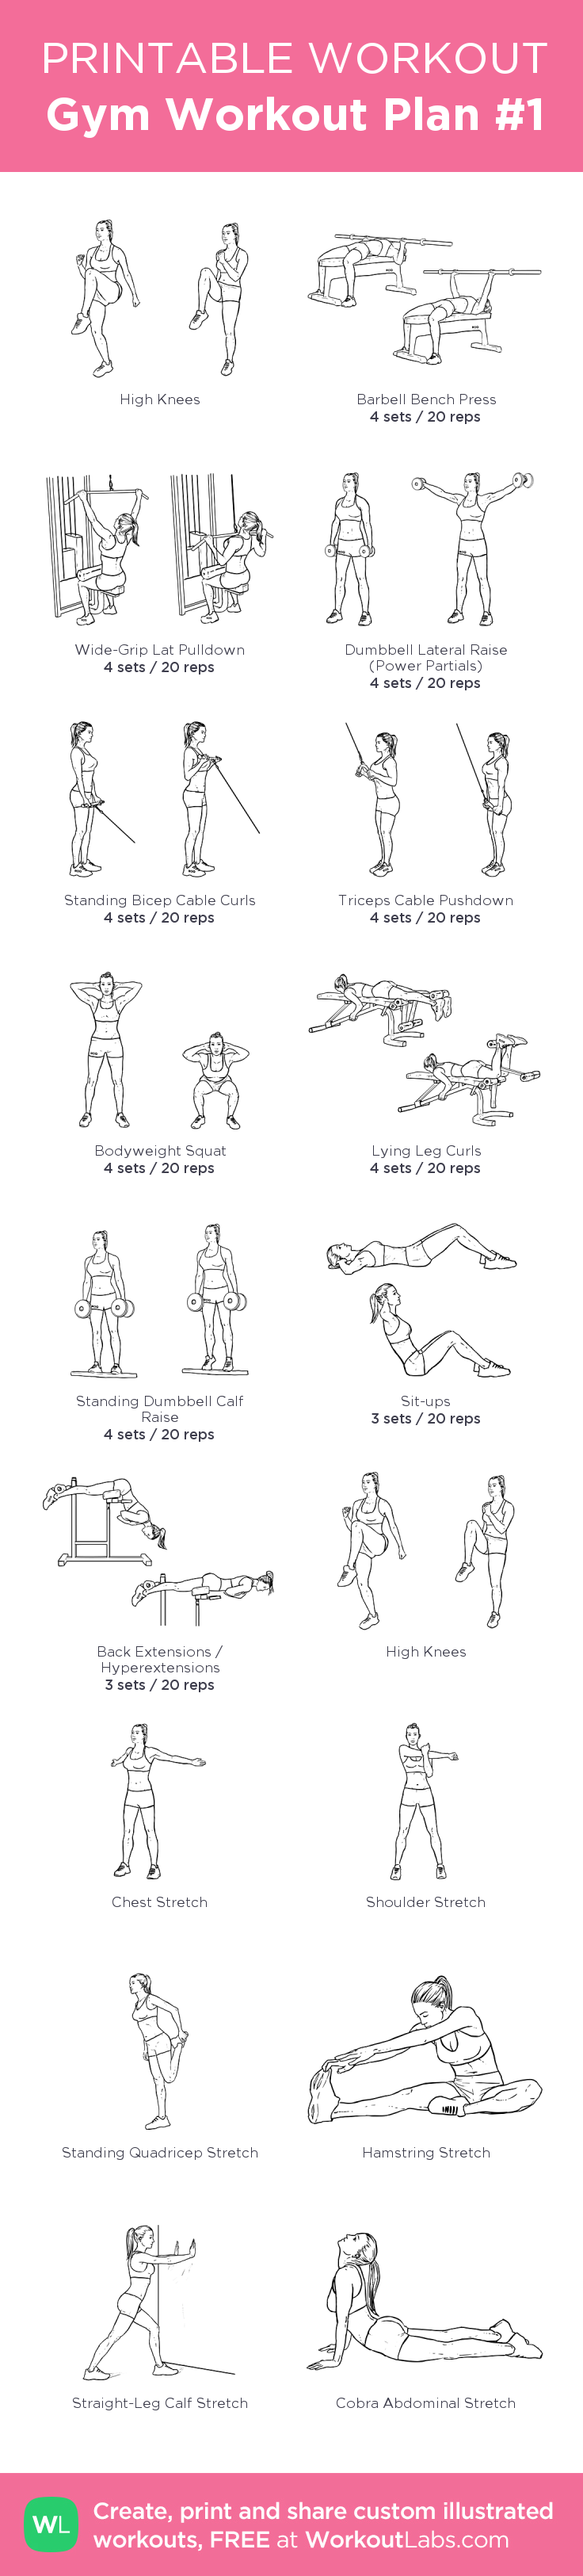 Gym Workout Plan #1: Instead of high knees do 5' warm up on treadmill, and at the end 5' low intensity for cool down before stretching. my custom printable workout by @WorkoutLabs #workoutlabs #customworkout